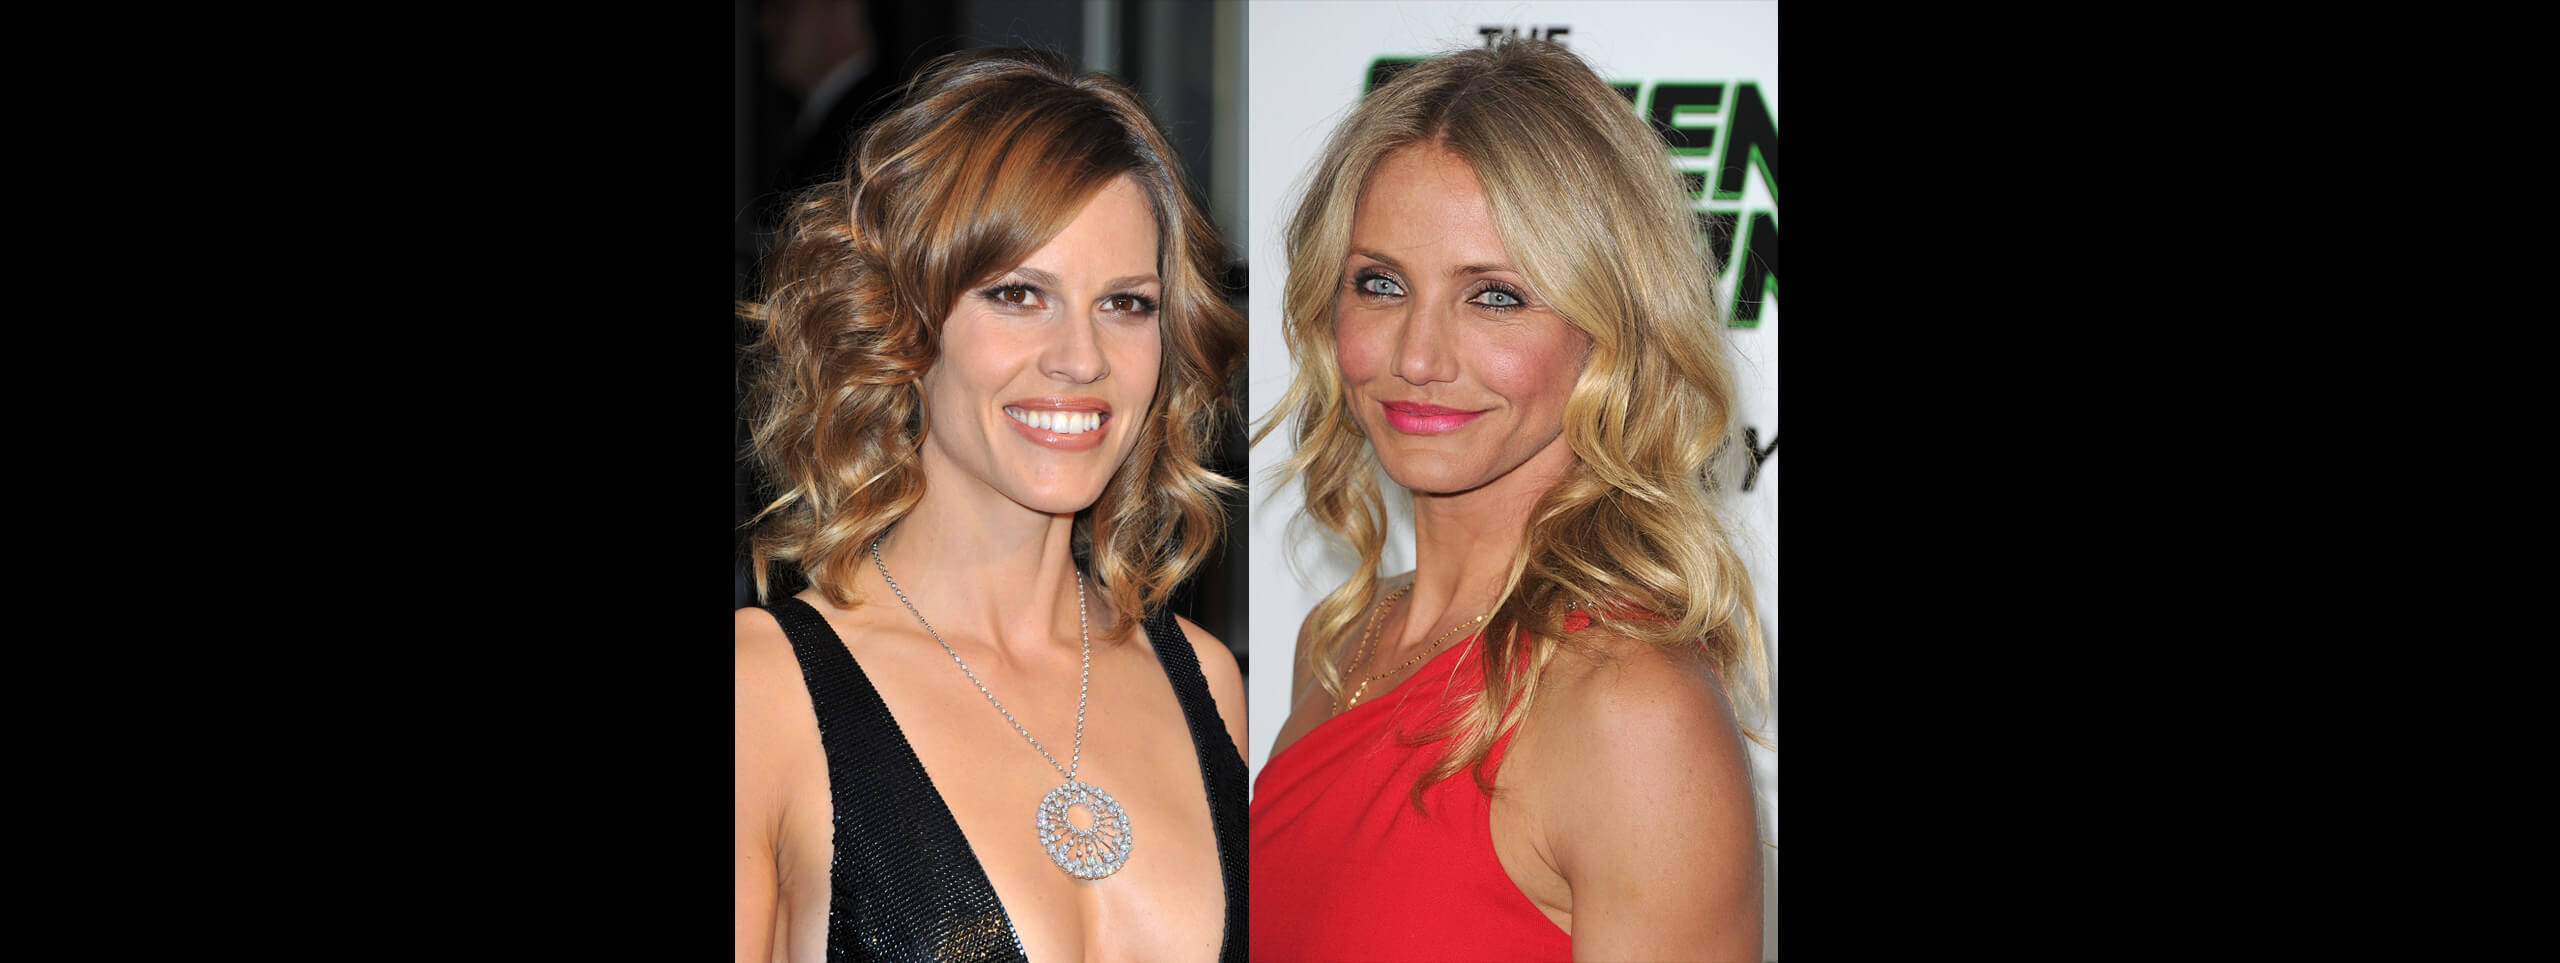 hairstyles-voting-cameron-diaz-hillary-swank